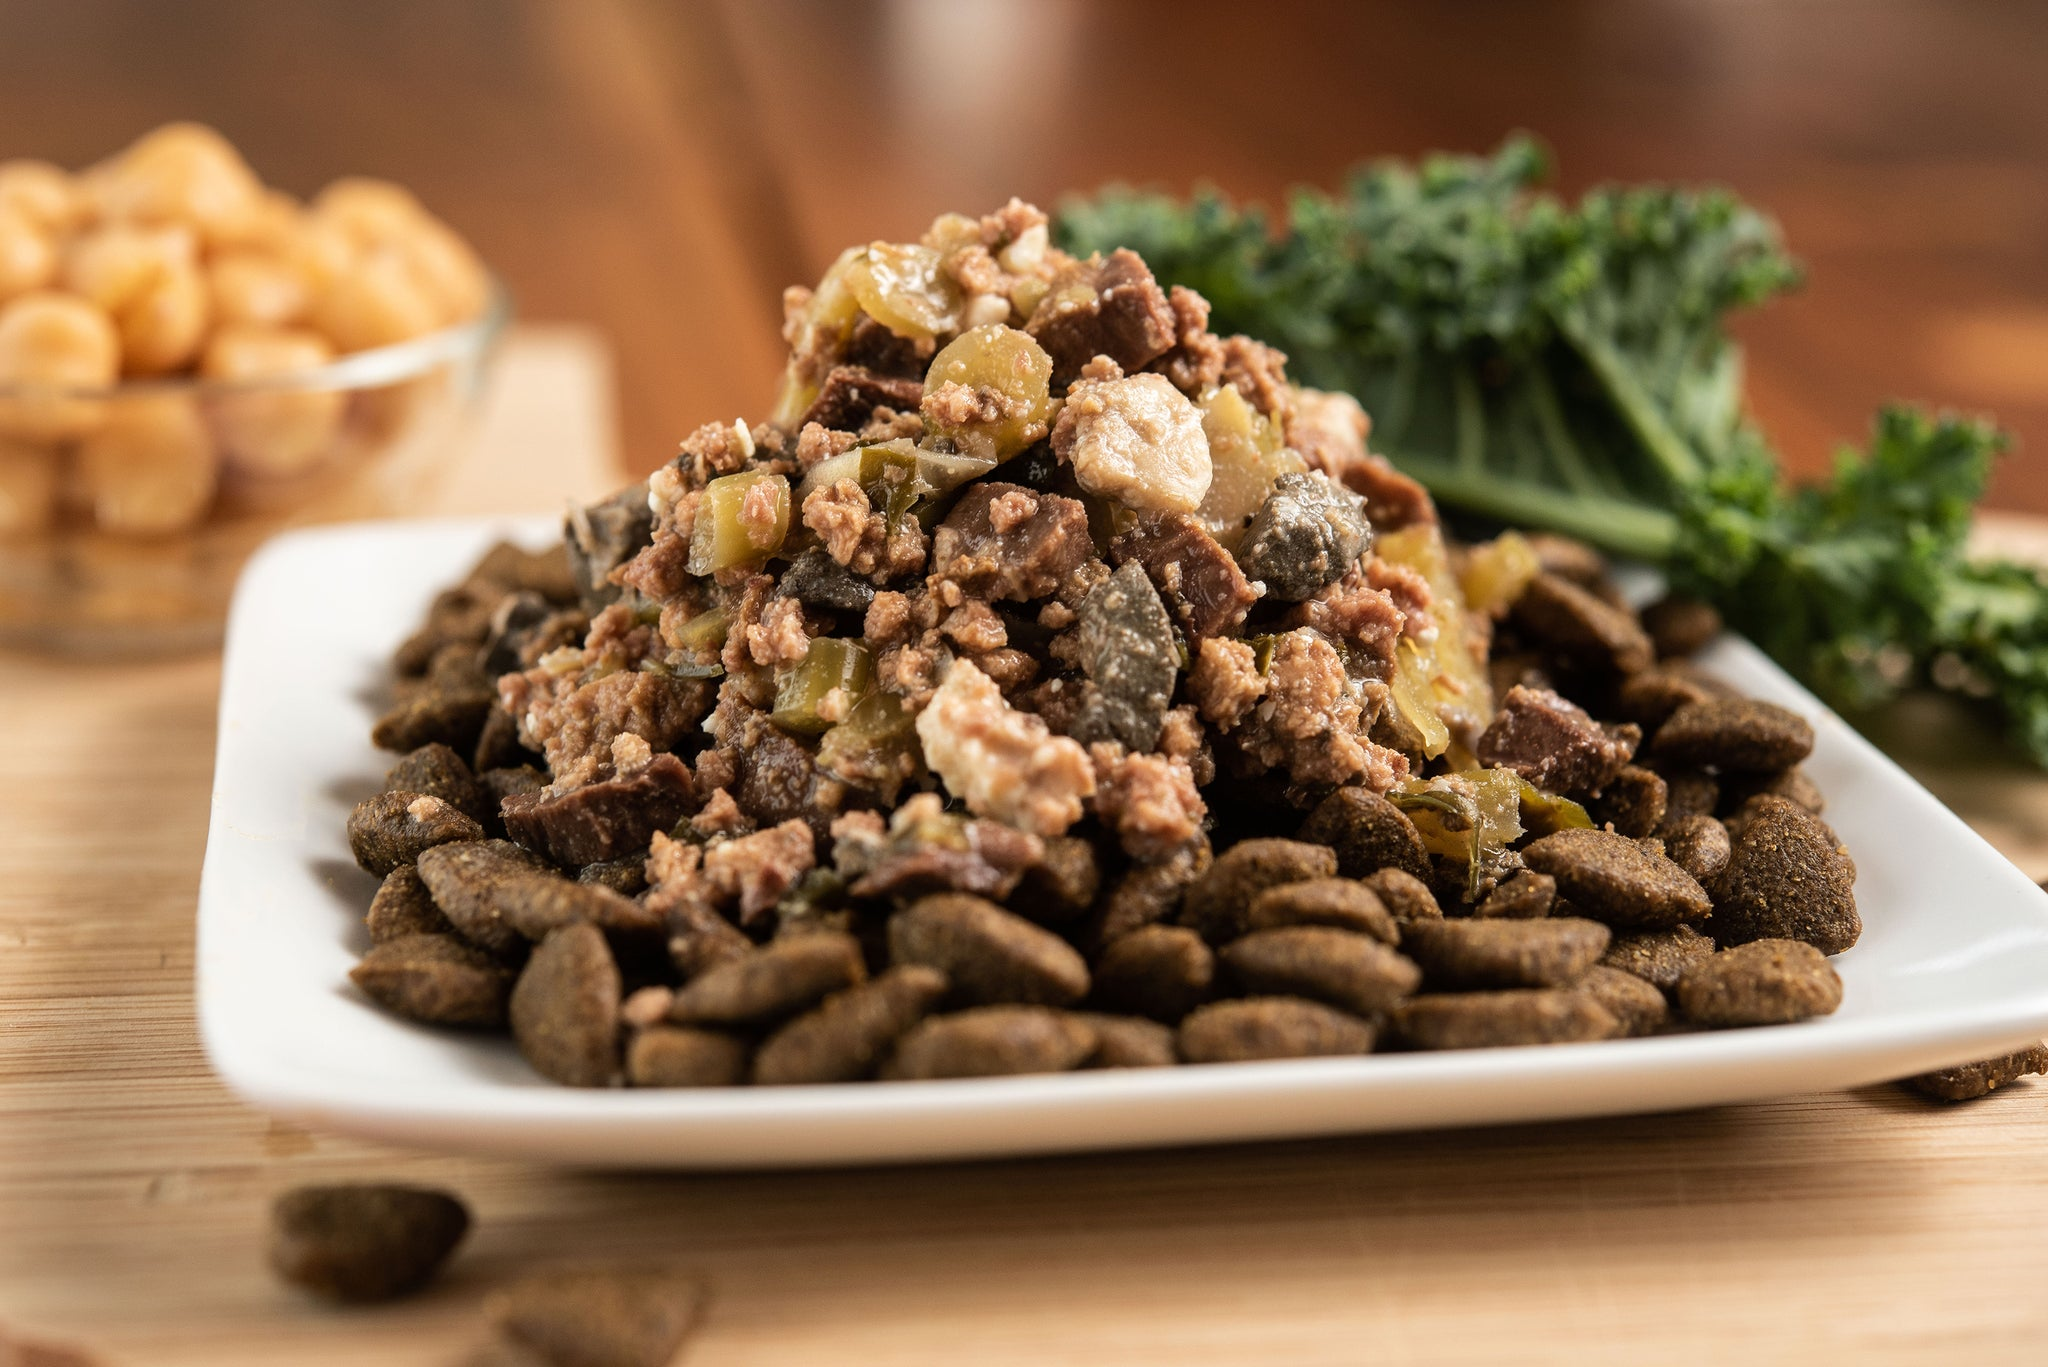 Lamb & Chickpea Kibble Topped With Beef, Beef Liver & Kale